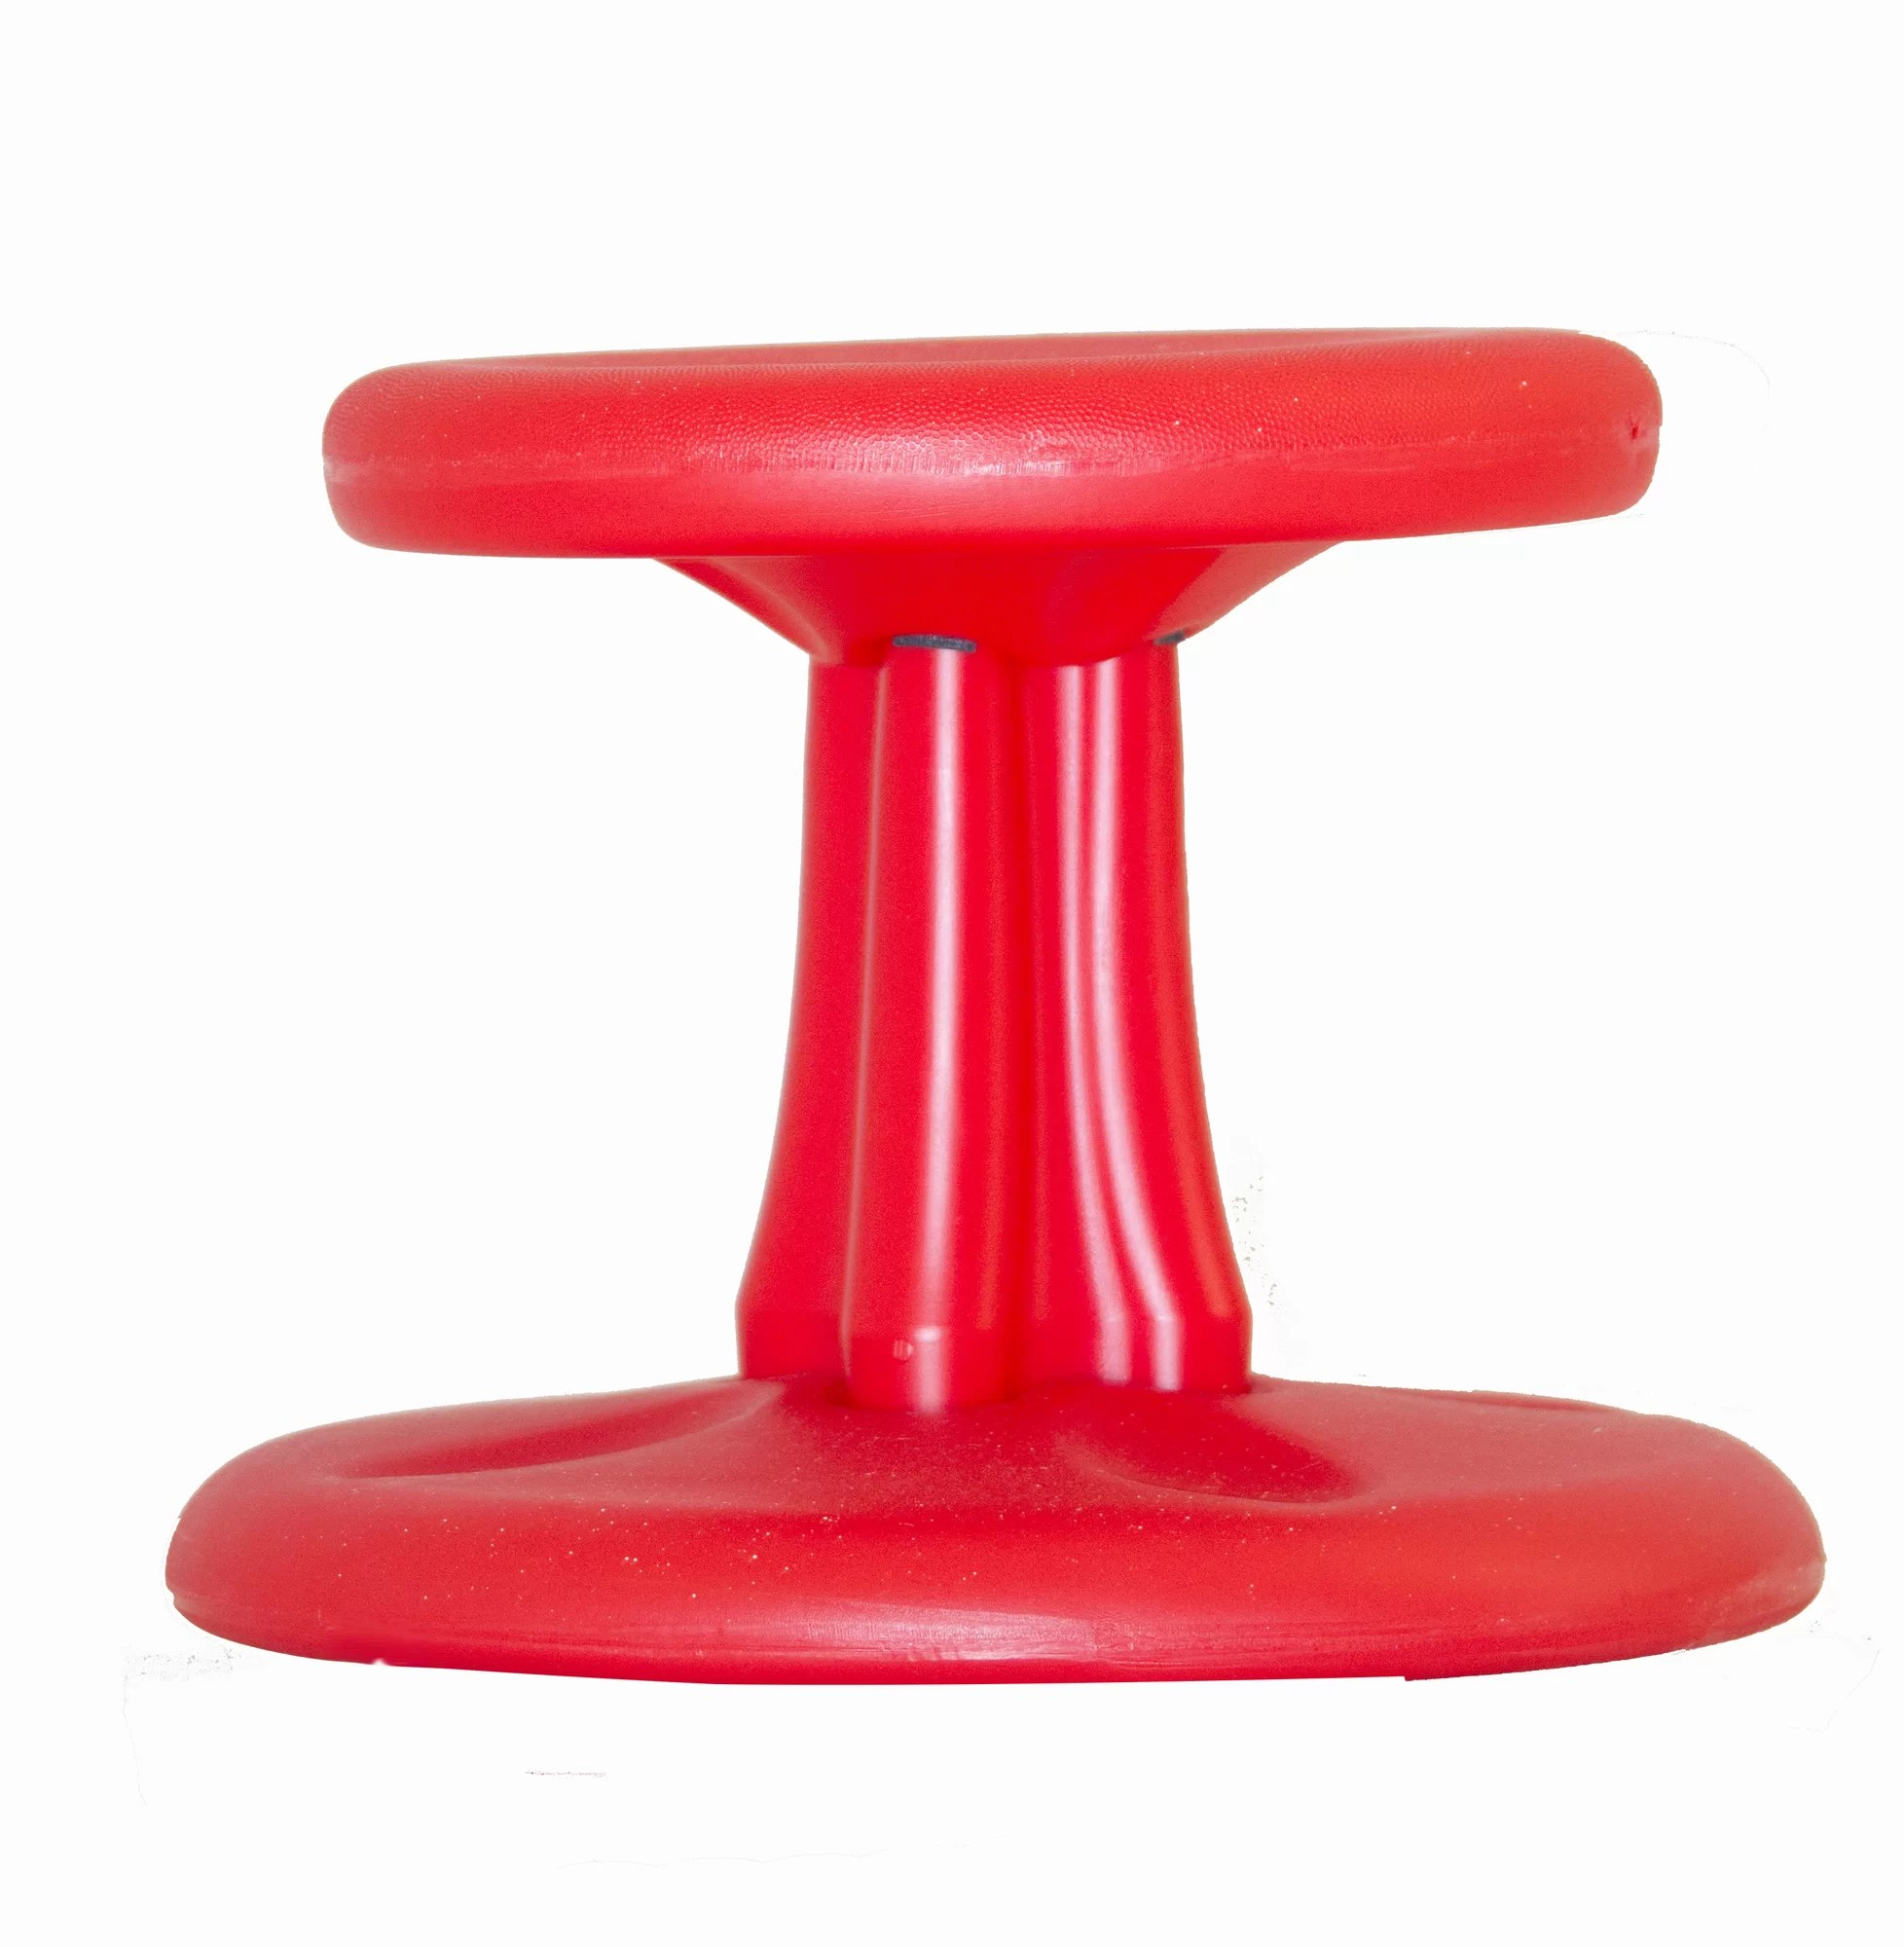 wobble chair adhd outdoor chairs nz kore design toddler kids stool